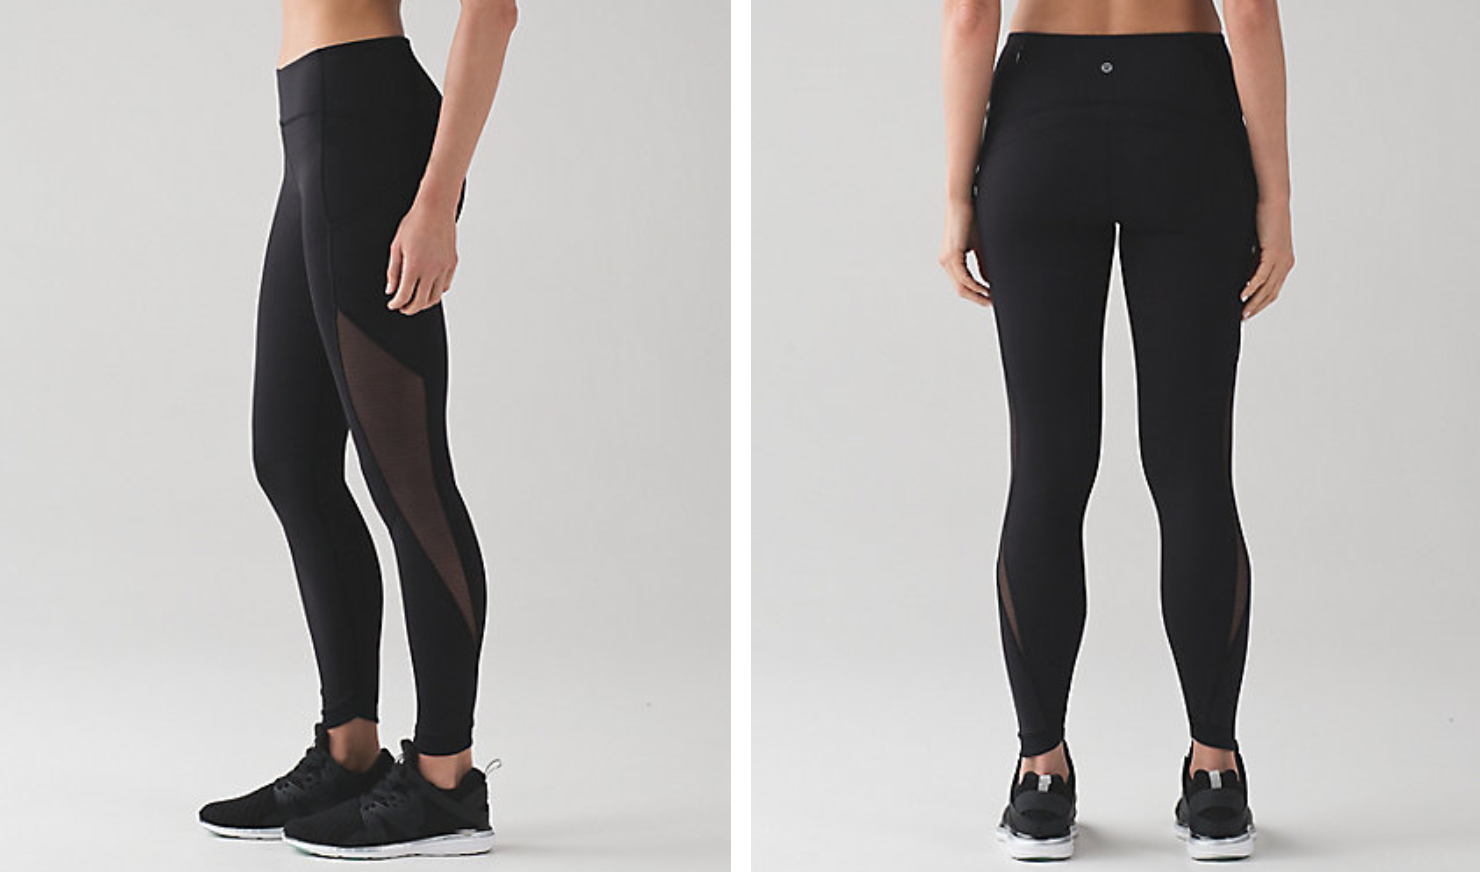 https://api.shopstyle.com/action/apiVisitRetailer?url=https%3A%2F%2Fshop.lululemon.com%2Fp%2Fwomen-78-pants%2FSole-Training-7-8-Tight%2F_%2Fprod8431294%3Frcnt%3D3%26N%3D1z13ziiZ7z5%26cnt%3D38%26color%3DLW5AGPS_018672&site=www.shopstyle.ca&pid=uid6784-25288972-7